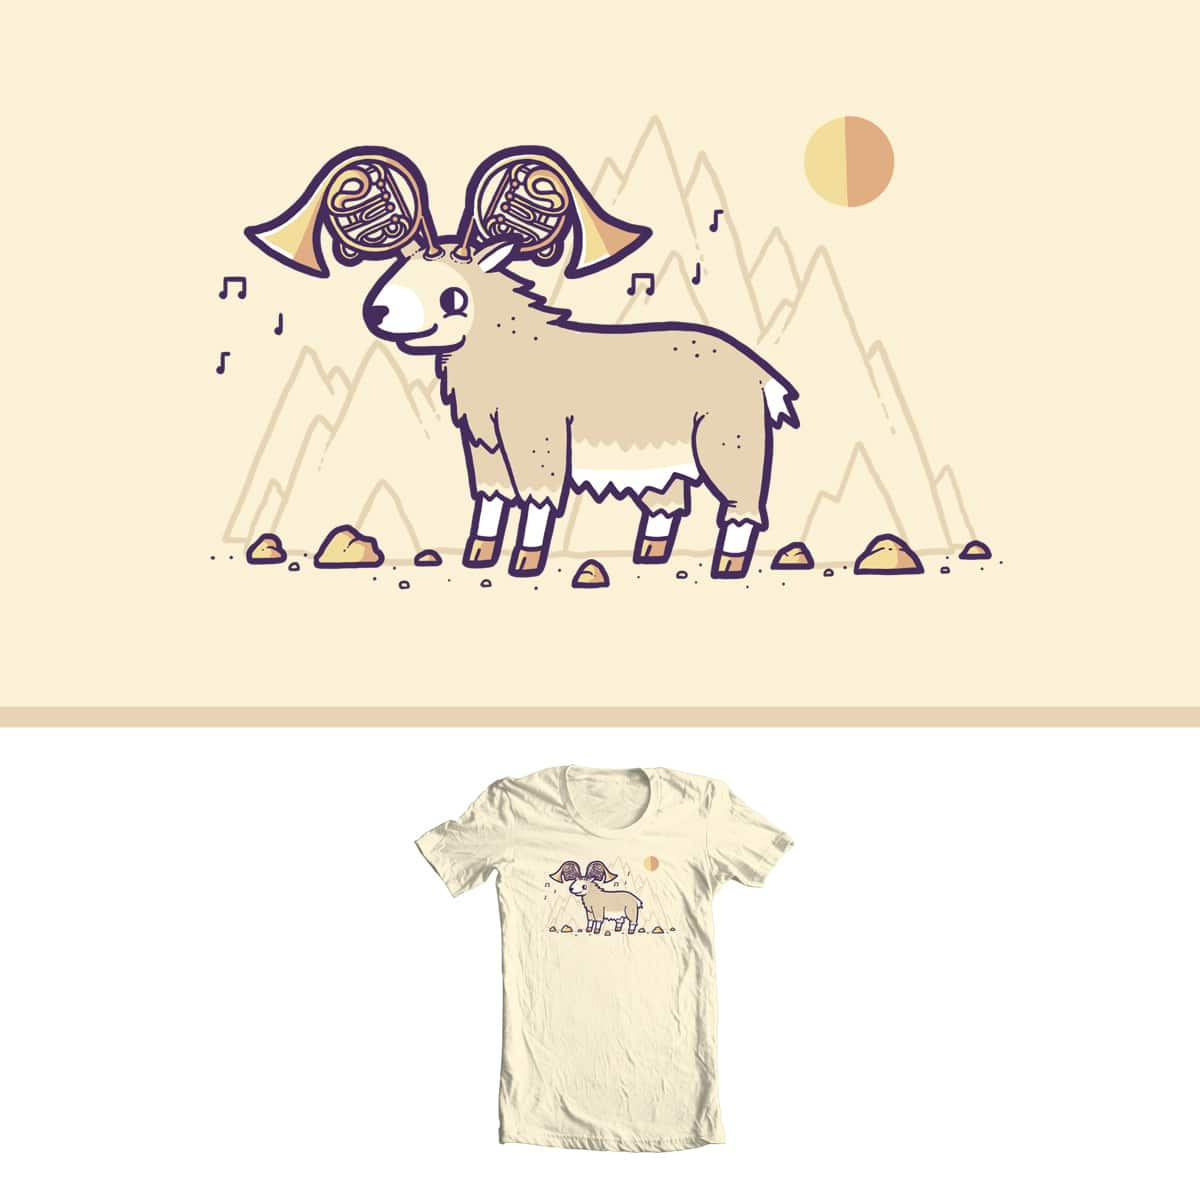 Goat Horns by randyotter3000 on Threadless